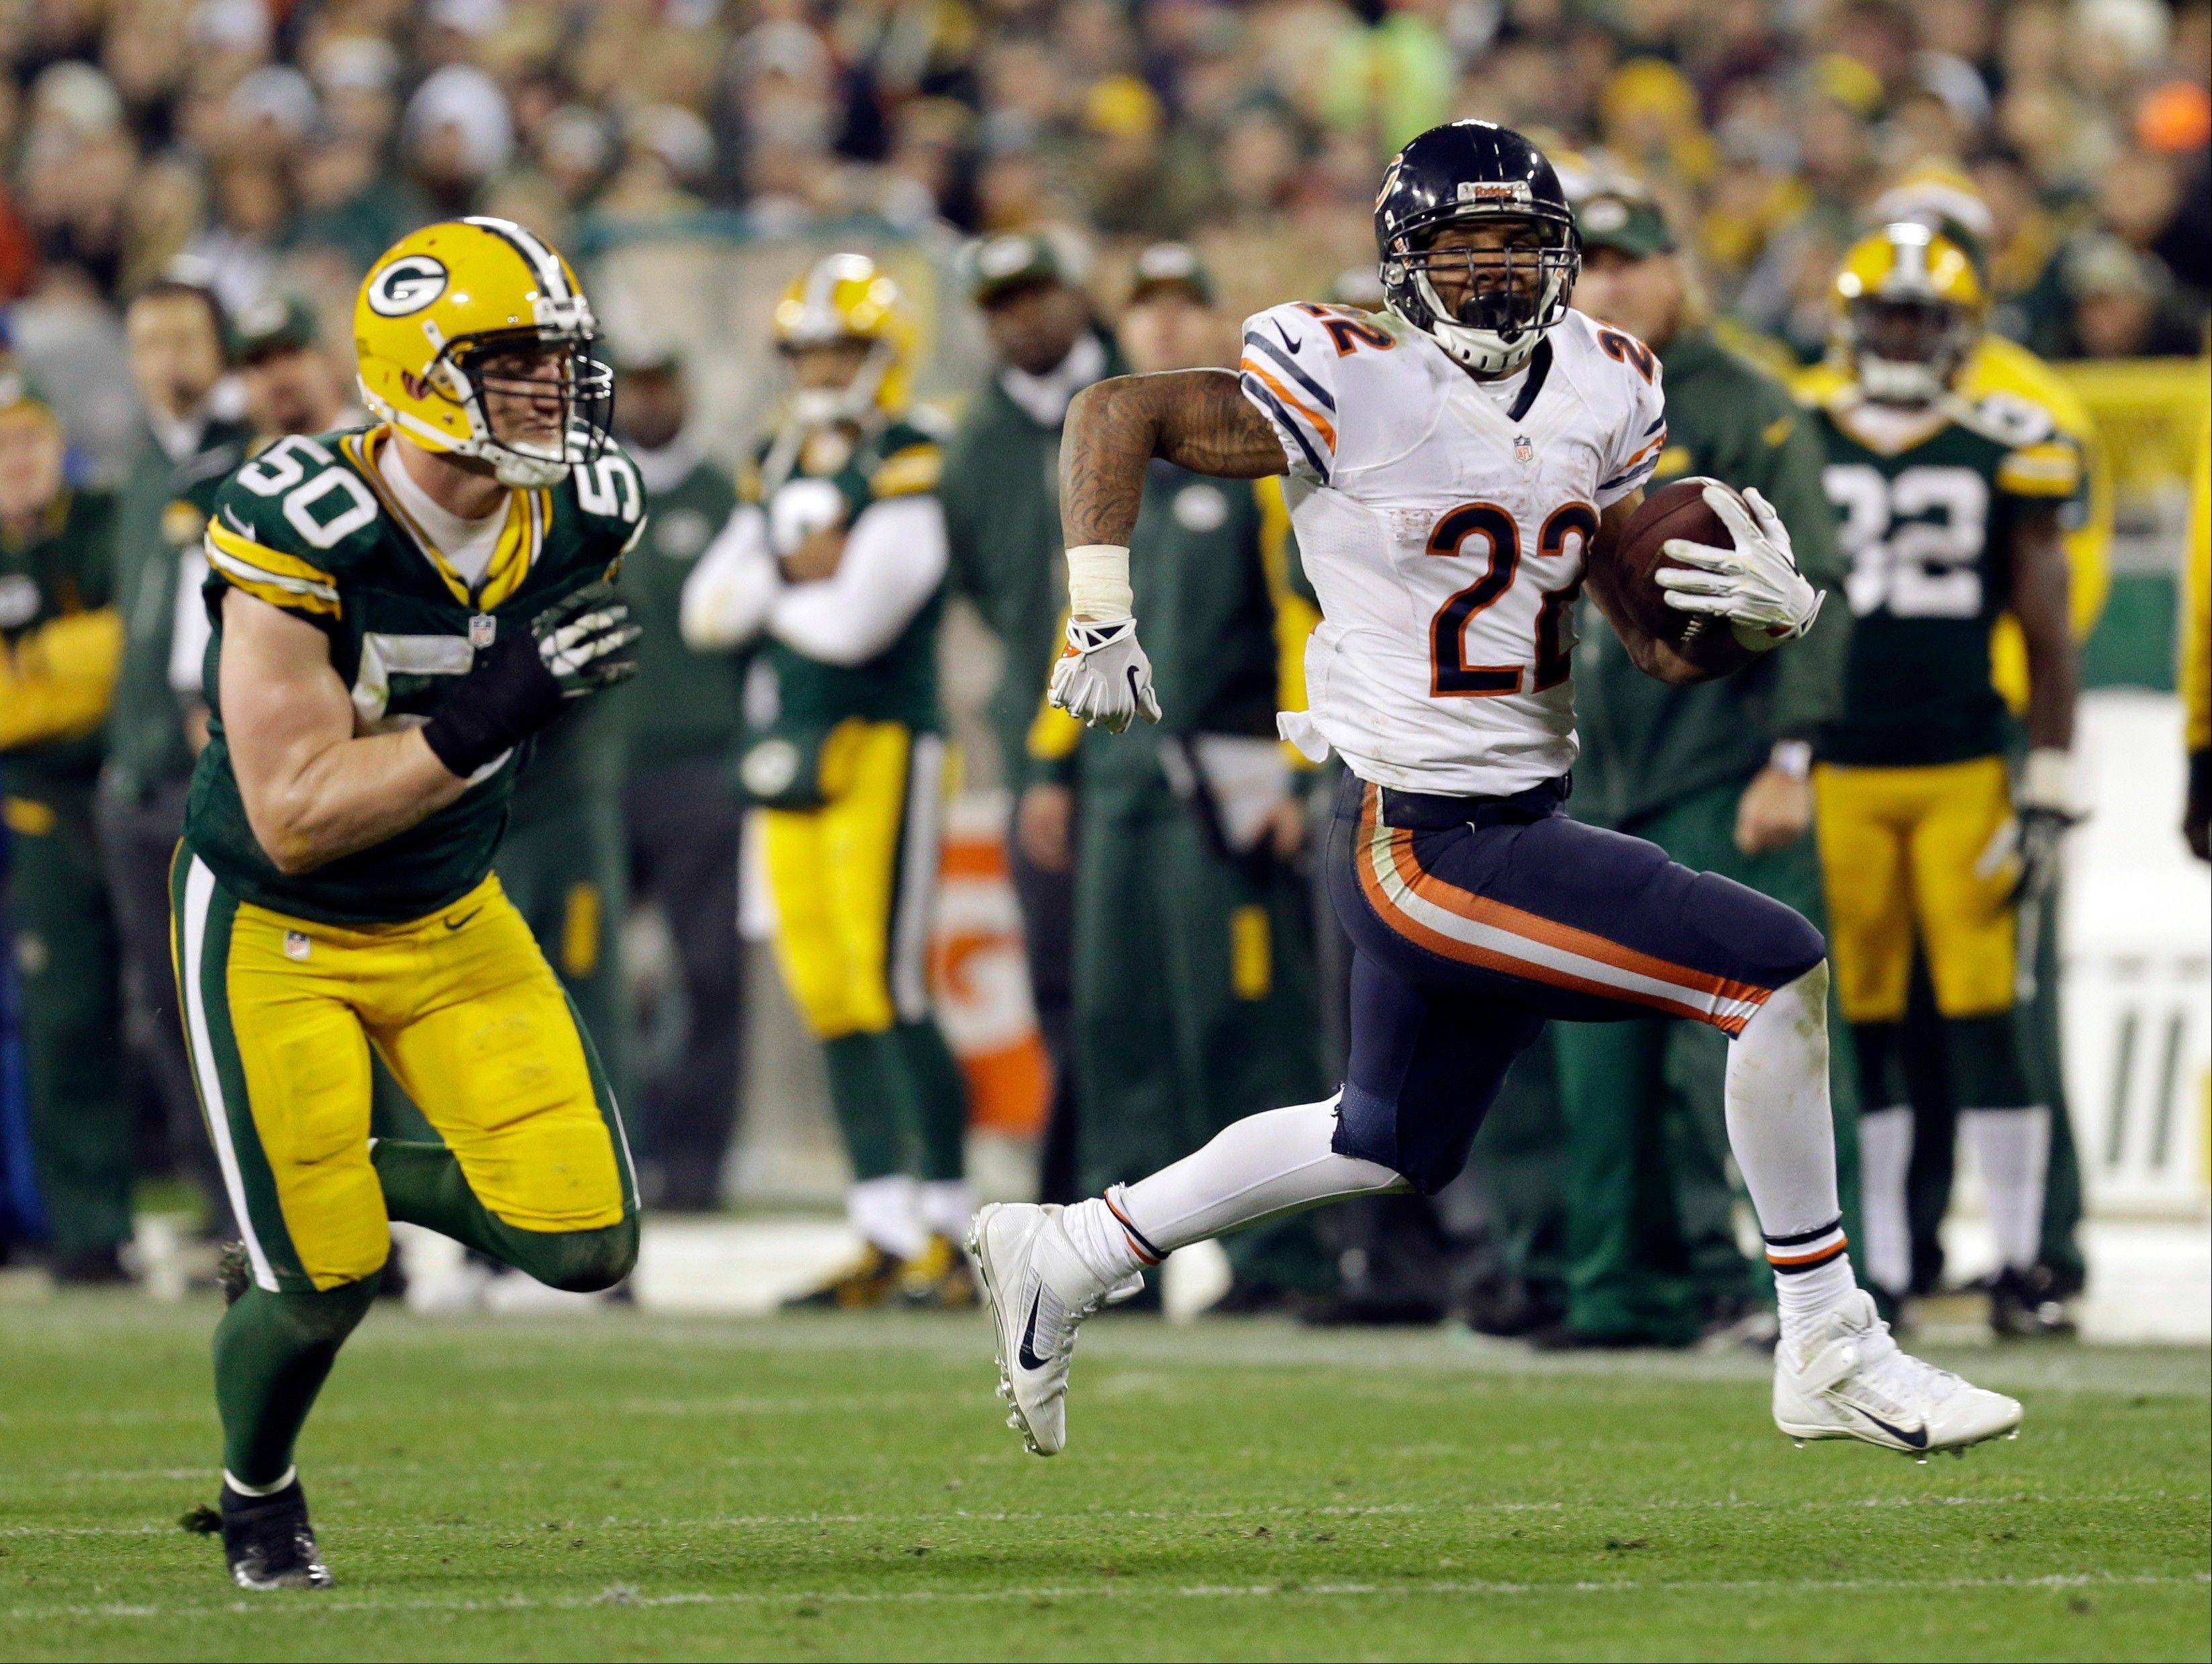 The Bears� Matt Forte sprints past the Packers� A.J. Hawk in the second half Monday. With 7:50 left in the game, Forte converted on fourth-and-inches from the Bears� 32 to prolong a game-saving drive.